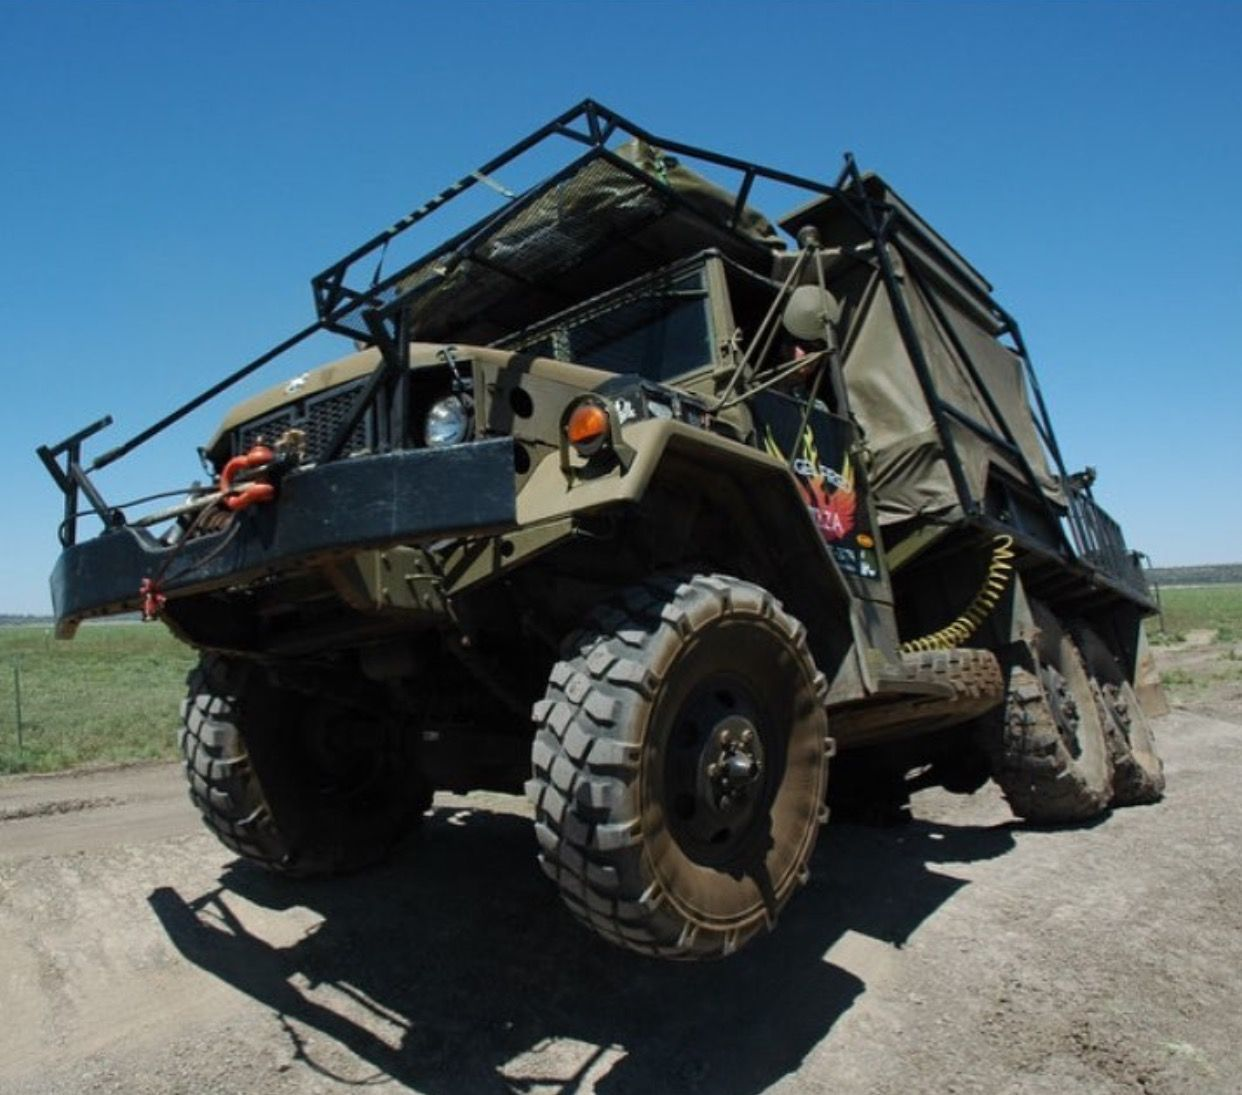 Military grade expedition vehicle at the 2012 overland expo allrad ger te pinterest expedition vehicle military and 4x4